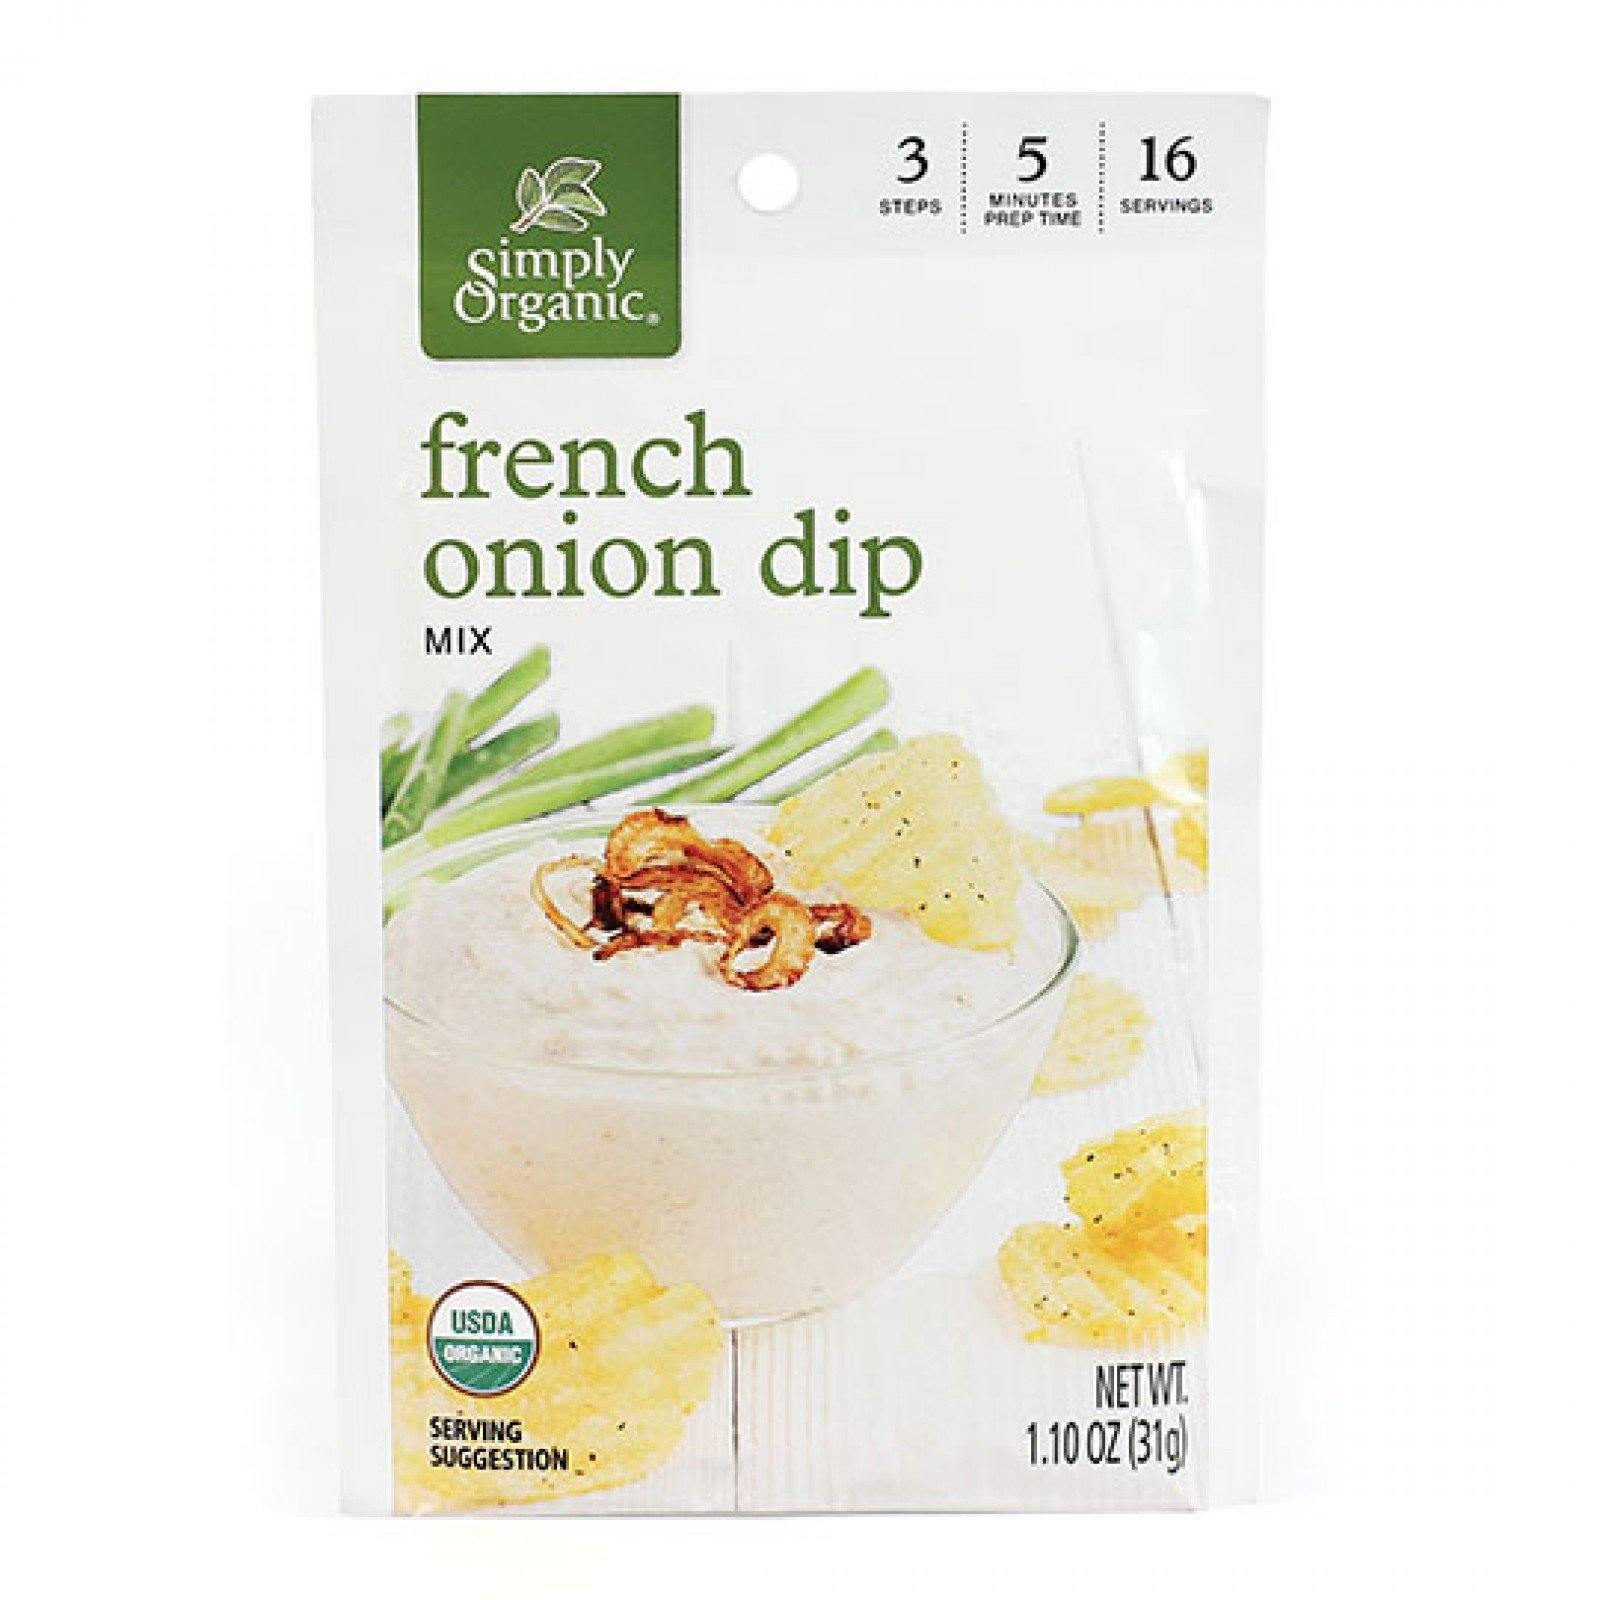 Food & Drink - Simply Organic - French Onion Dip Mix - 31g